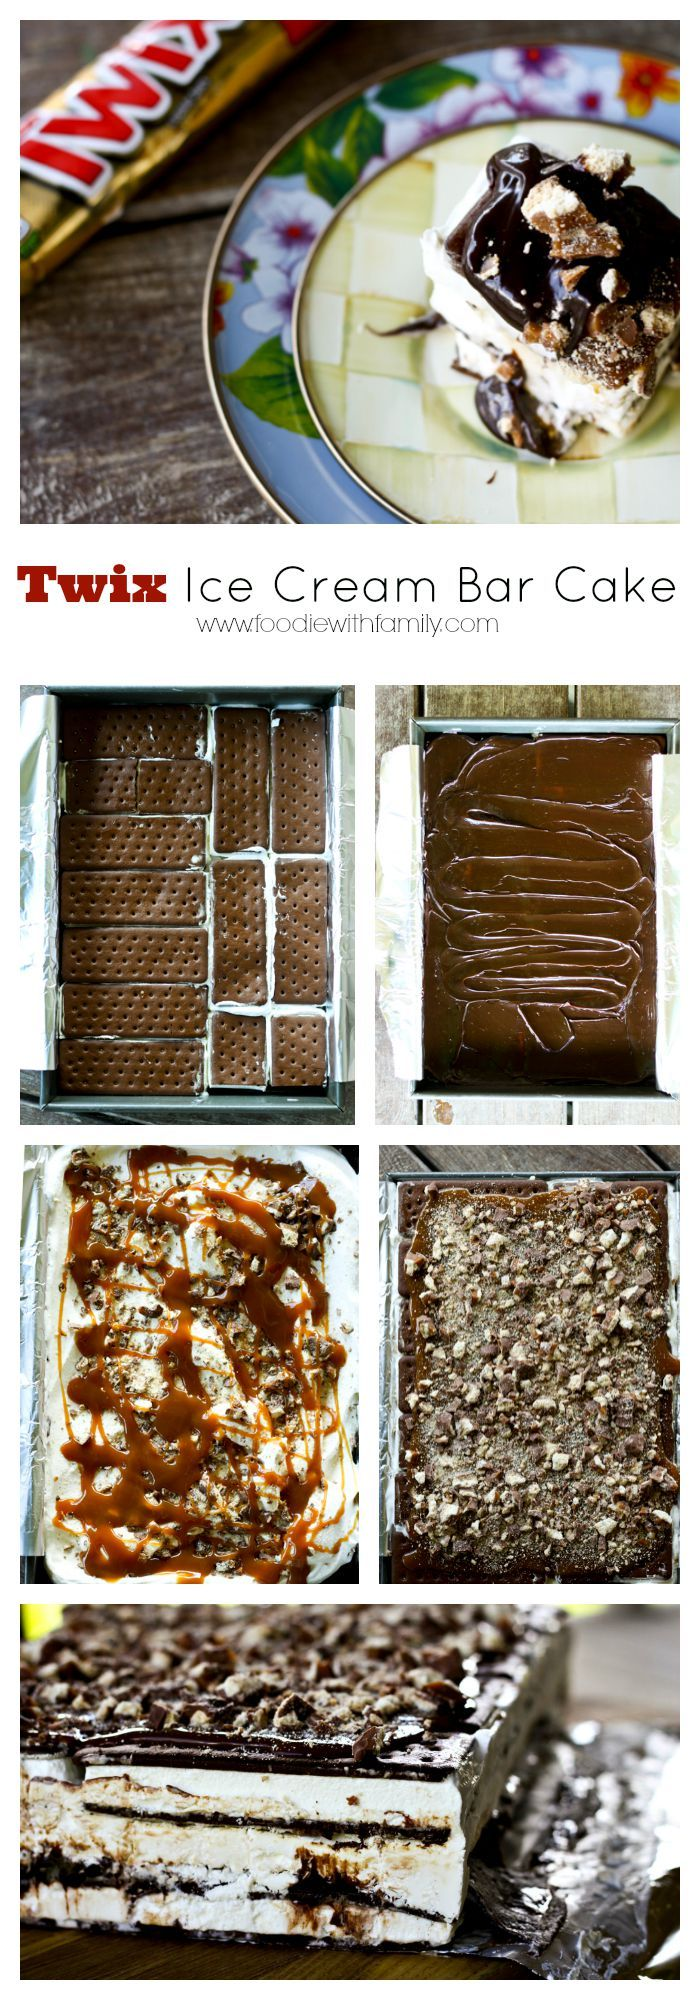 Twix Ice Cream Sandwich Cake for No-Bake summer sweet tooth satisfaction